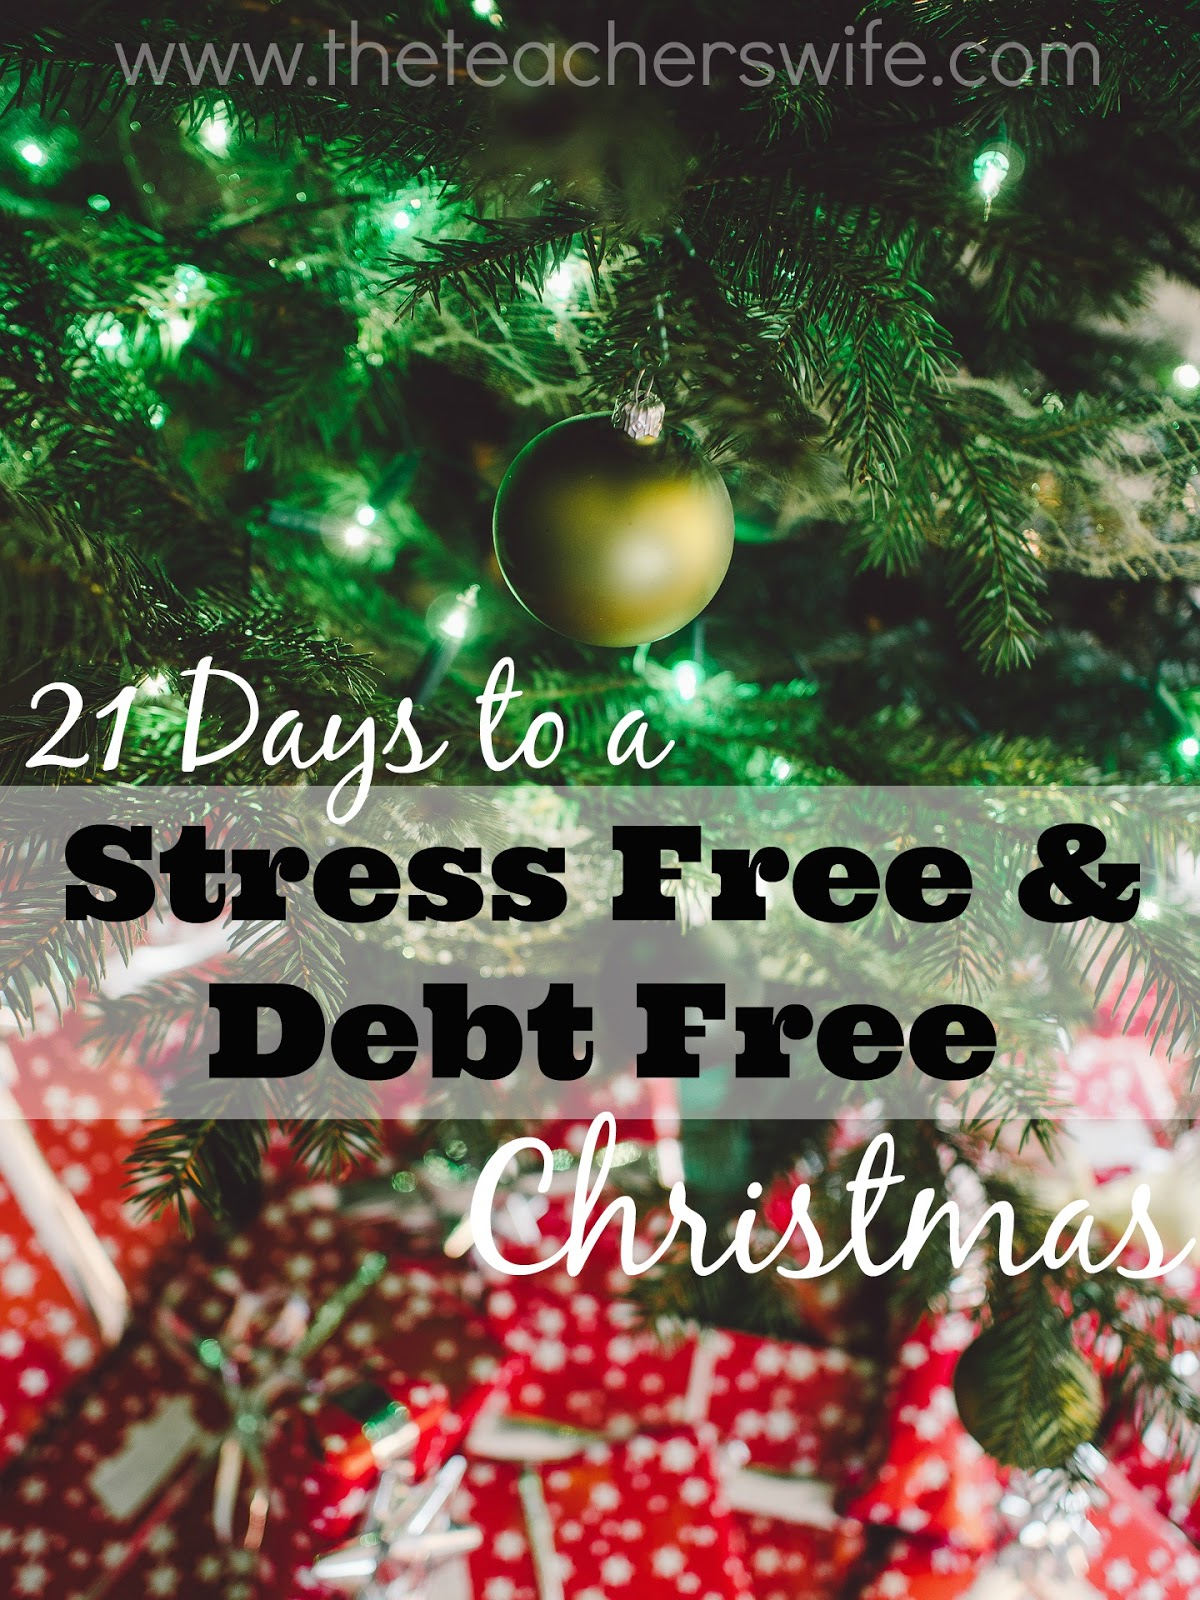 Free gifts for christmas by mail